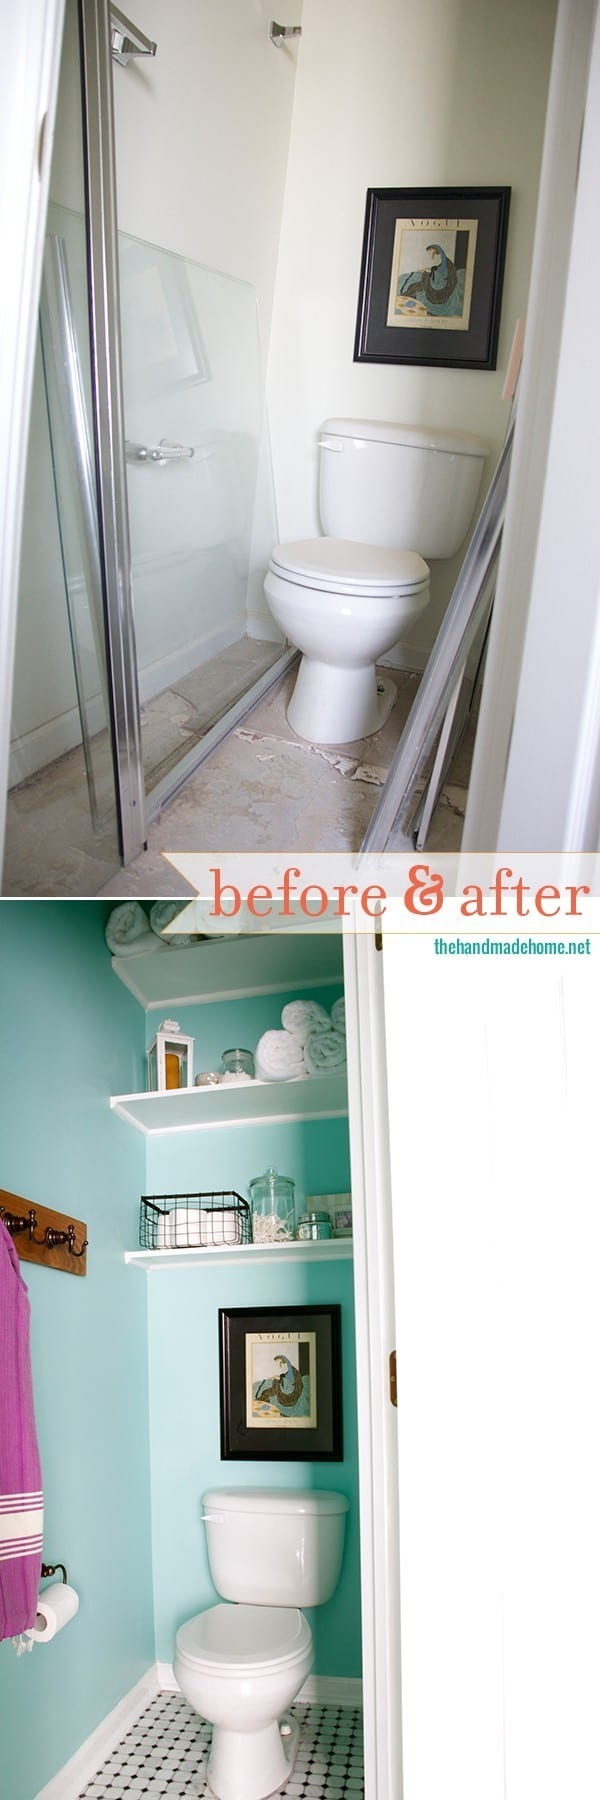 before_and_after_bathroom_redo2